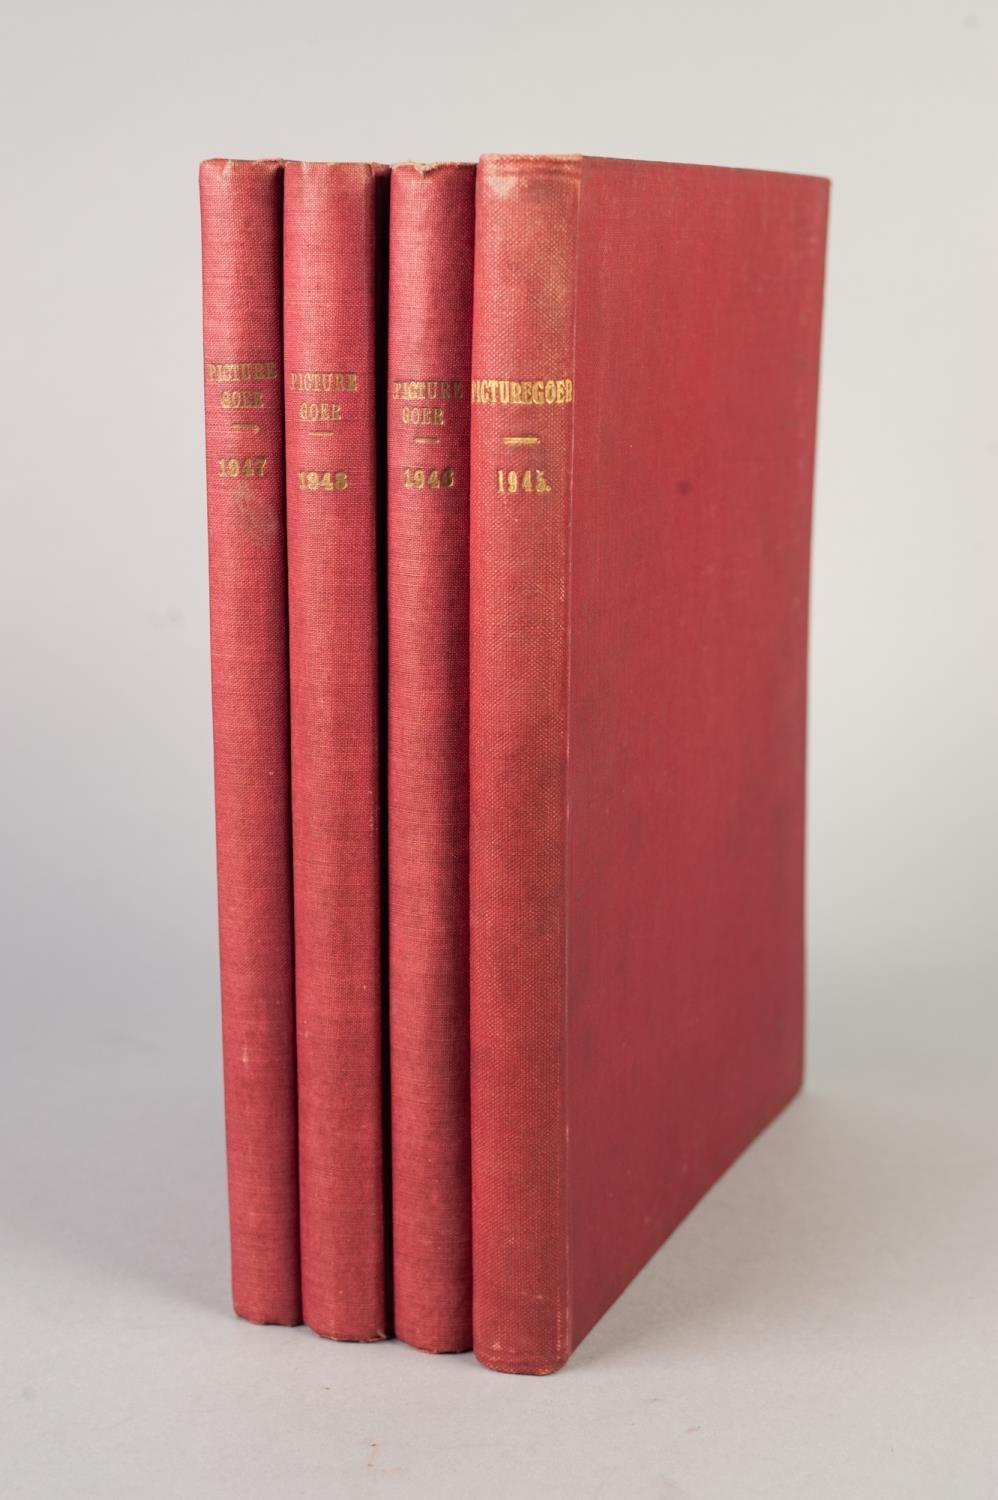 Lot 29 - SMALL SELECTION OF PICTUREGOER ANNUALS, 1940s, bound in red cloth, 1945, 1946, 1947, 1948, various